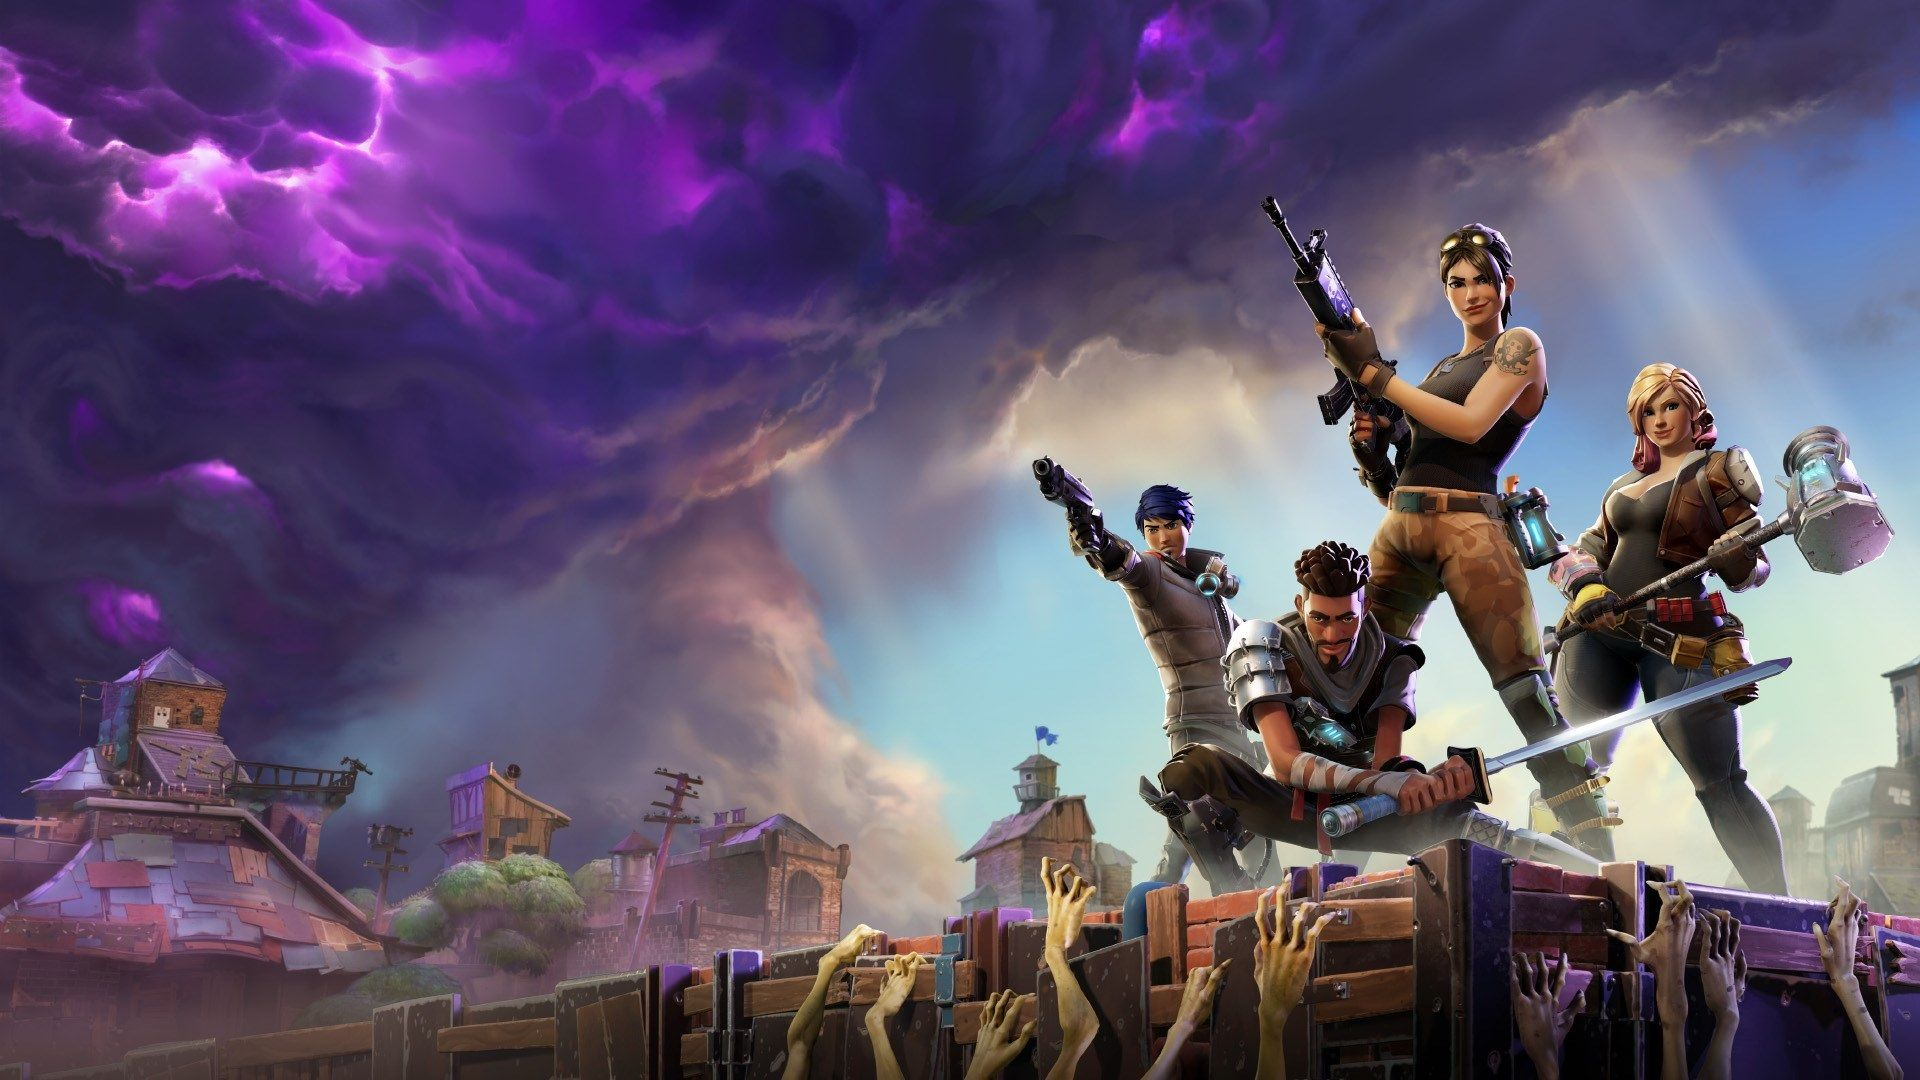 Free Download 1920x1080 Fortnite Full Hd Background Wallpapers And